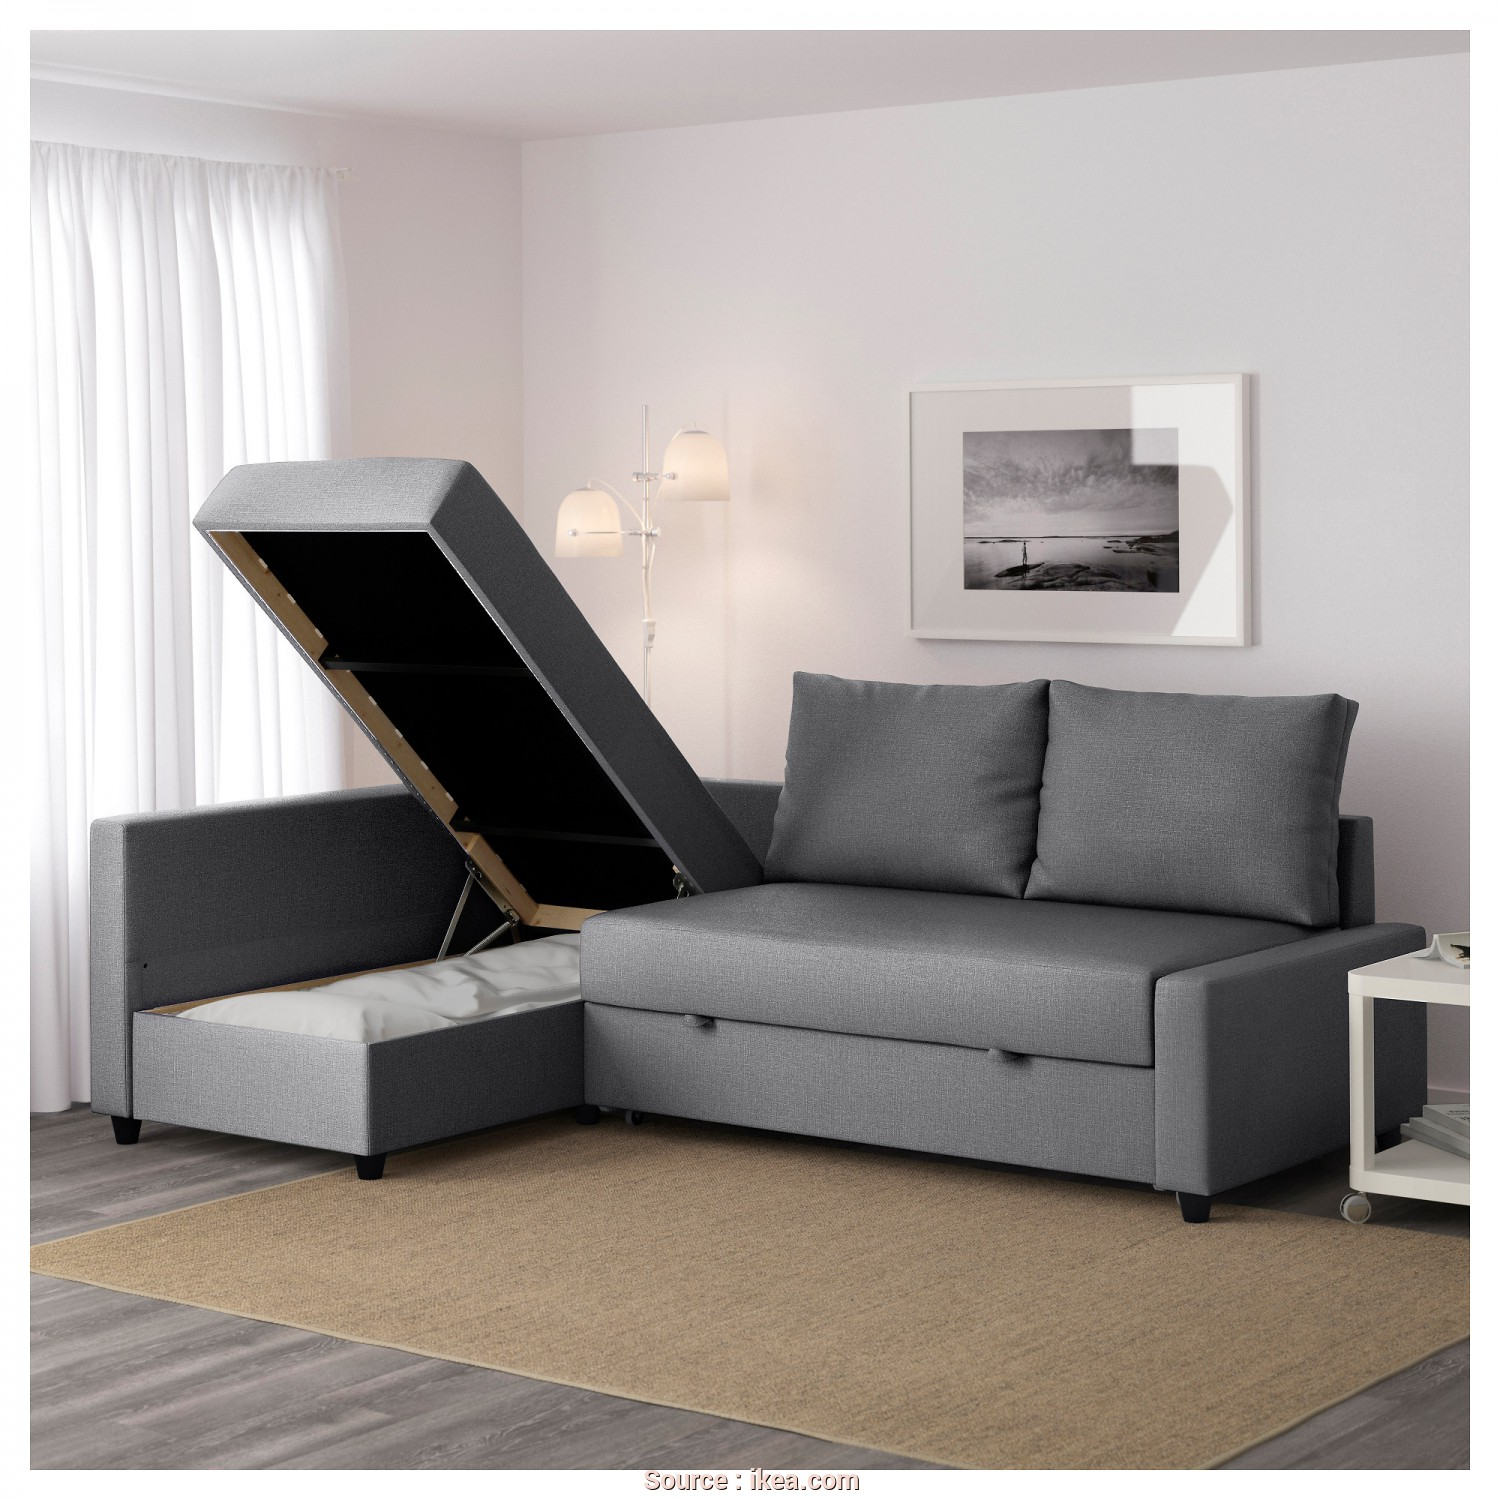 Futon Ikea Catalogo, Incredibile IKEA FRIHETEN Corner Sofa-Bed With Storage Sofa, Chaise Longue, Double, In